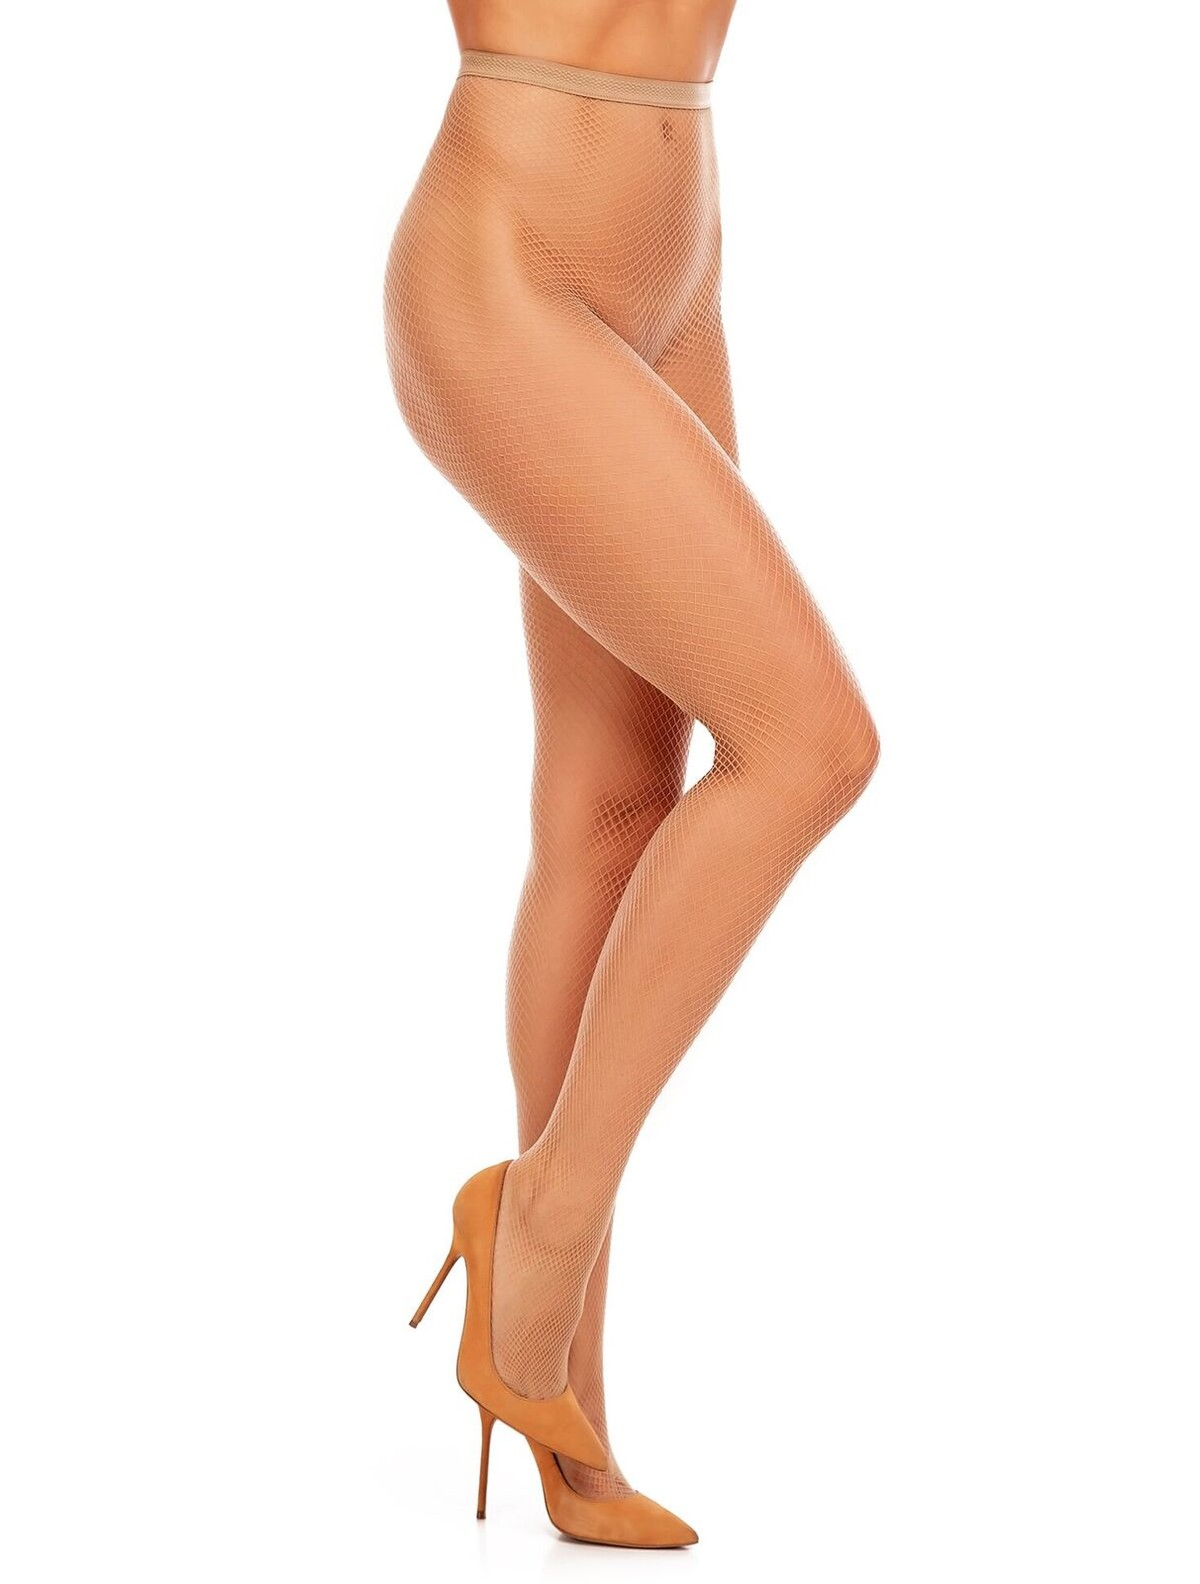 afec17faeb9 ... Levante Rete Fishnet Tights naturel